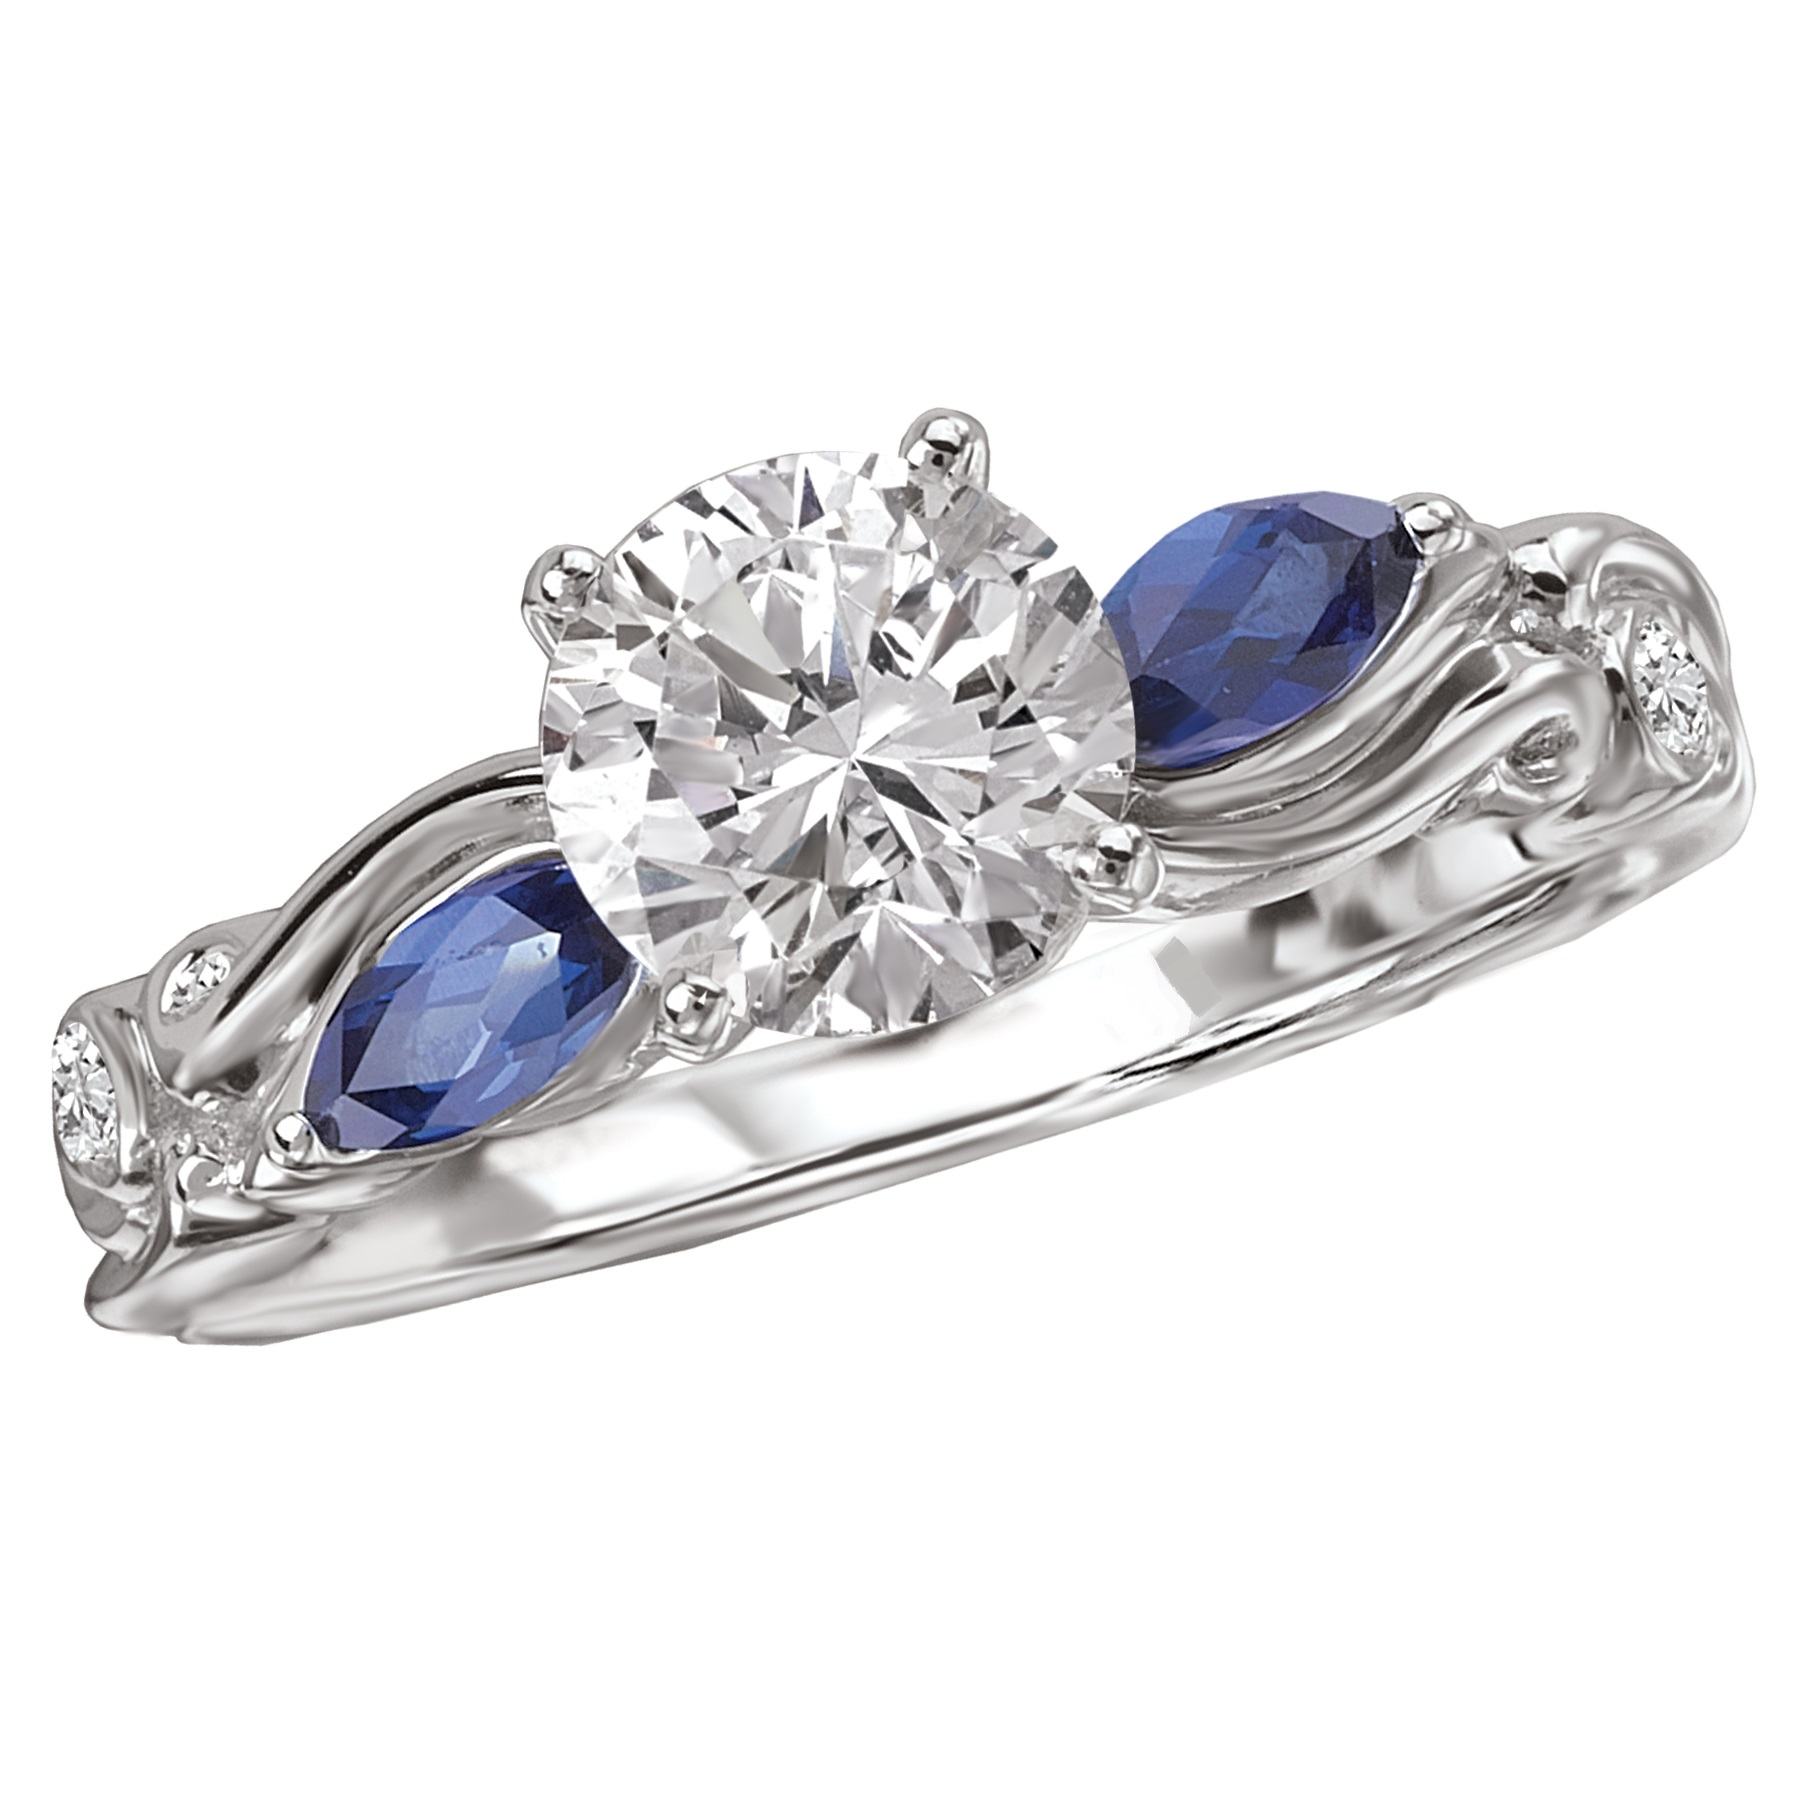 Floral ring with marquis sapphire accents by La Vie